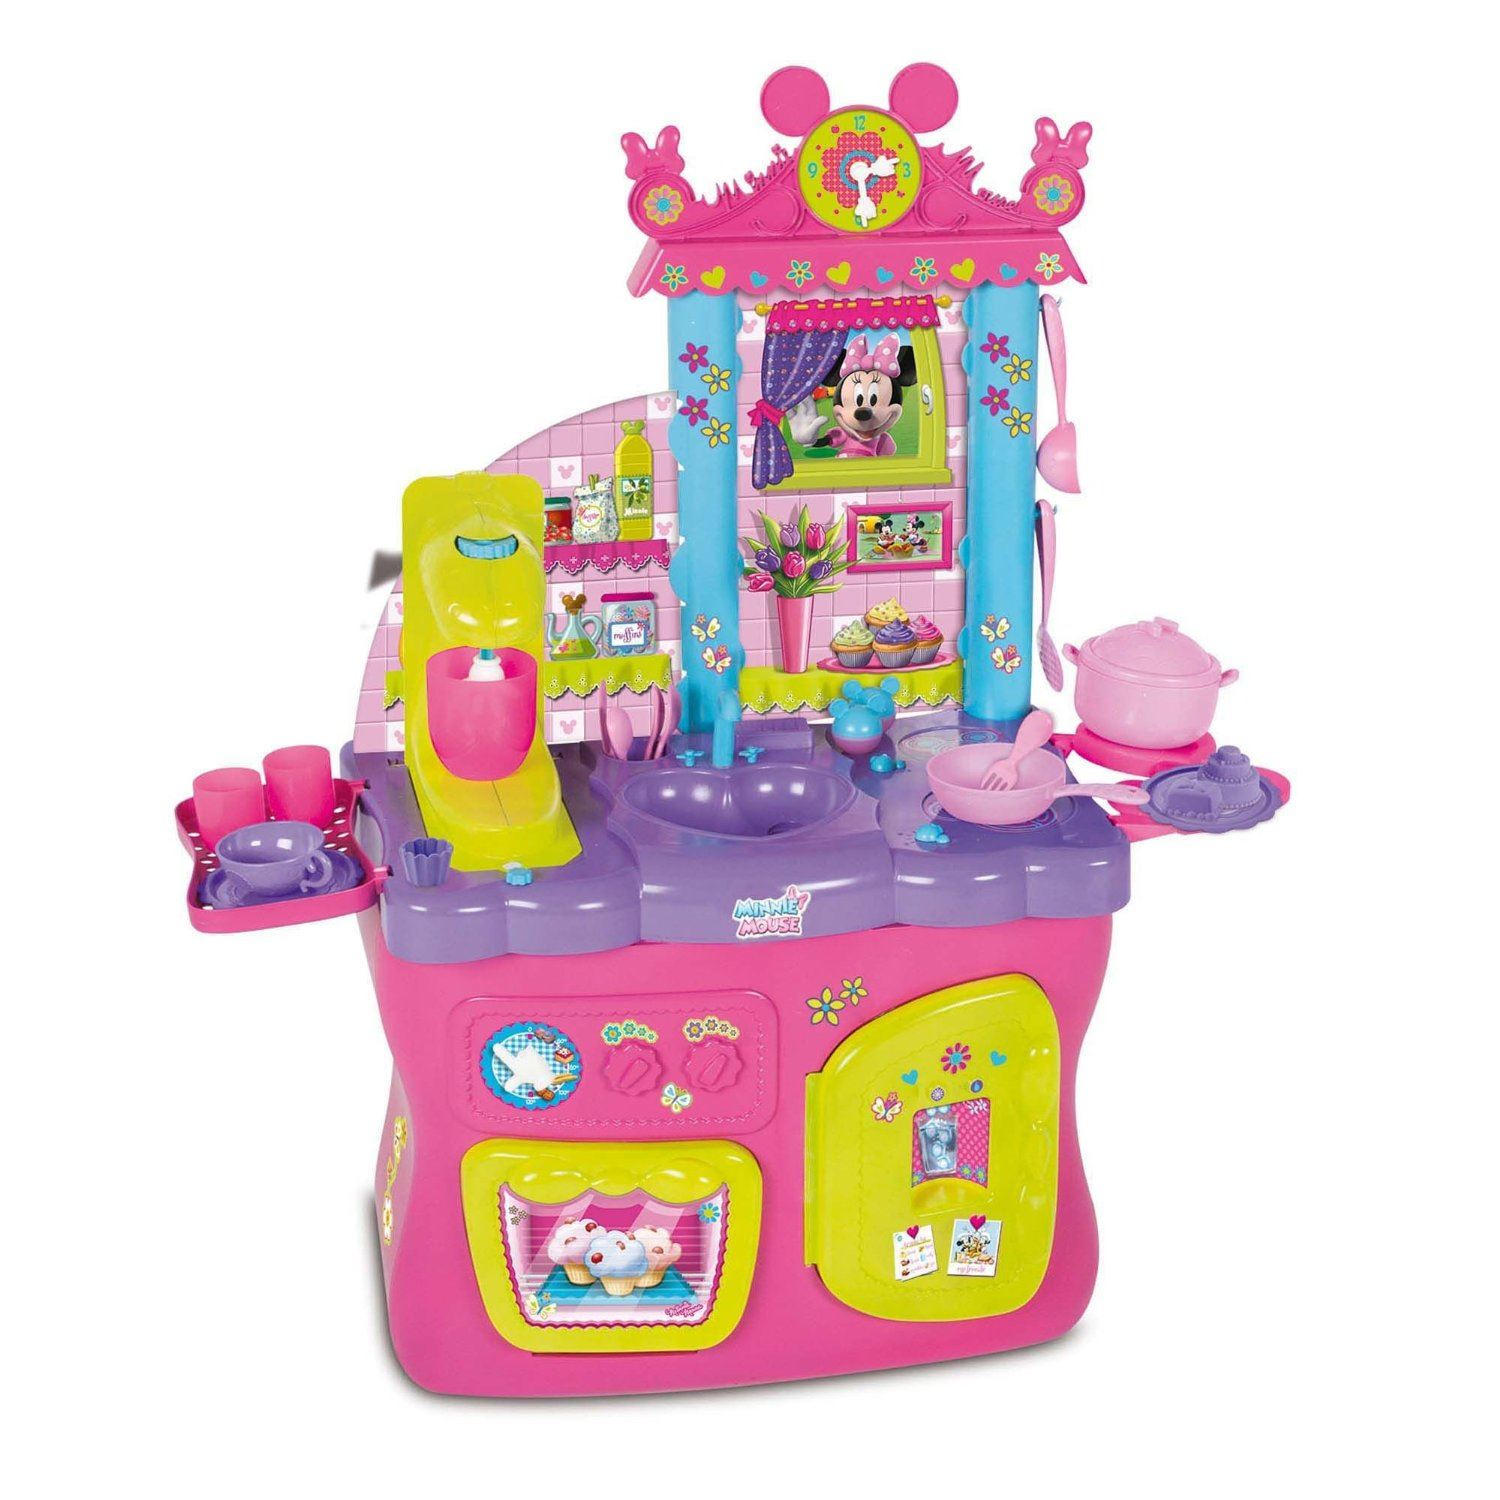 Cocina Minnie Mouse Disney Minnie Mouse Kitchen Girls Toy Cooking Playset With